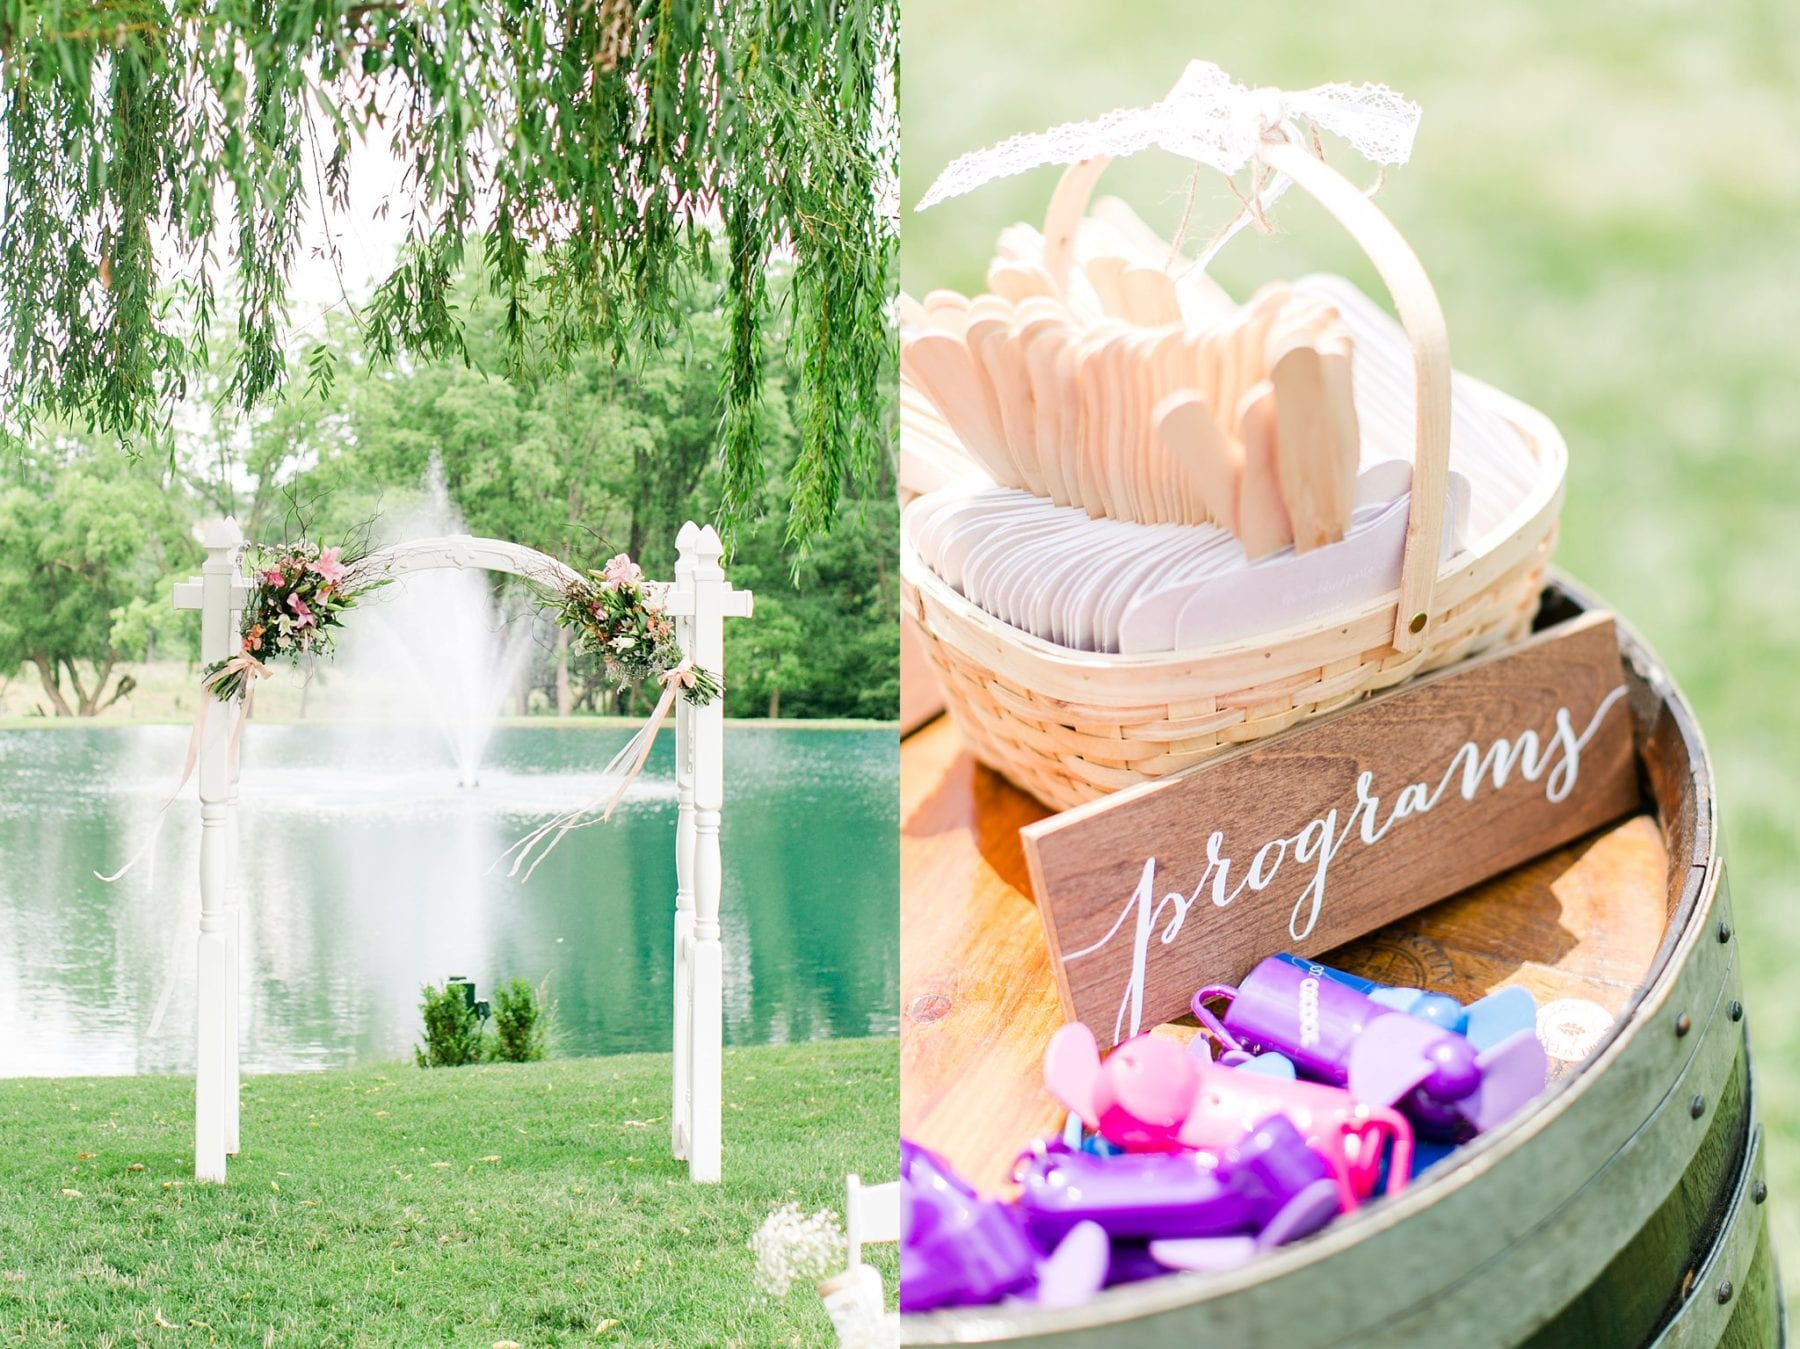 Pond View Farm Wedding Photos Maryland Wedding Photographer Kristen & Ryan Megan Kelsey Photography Blog-111.jpg